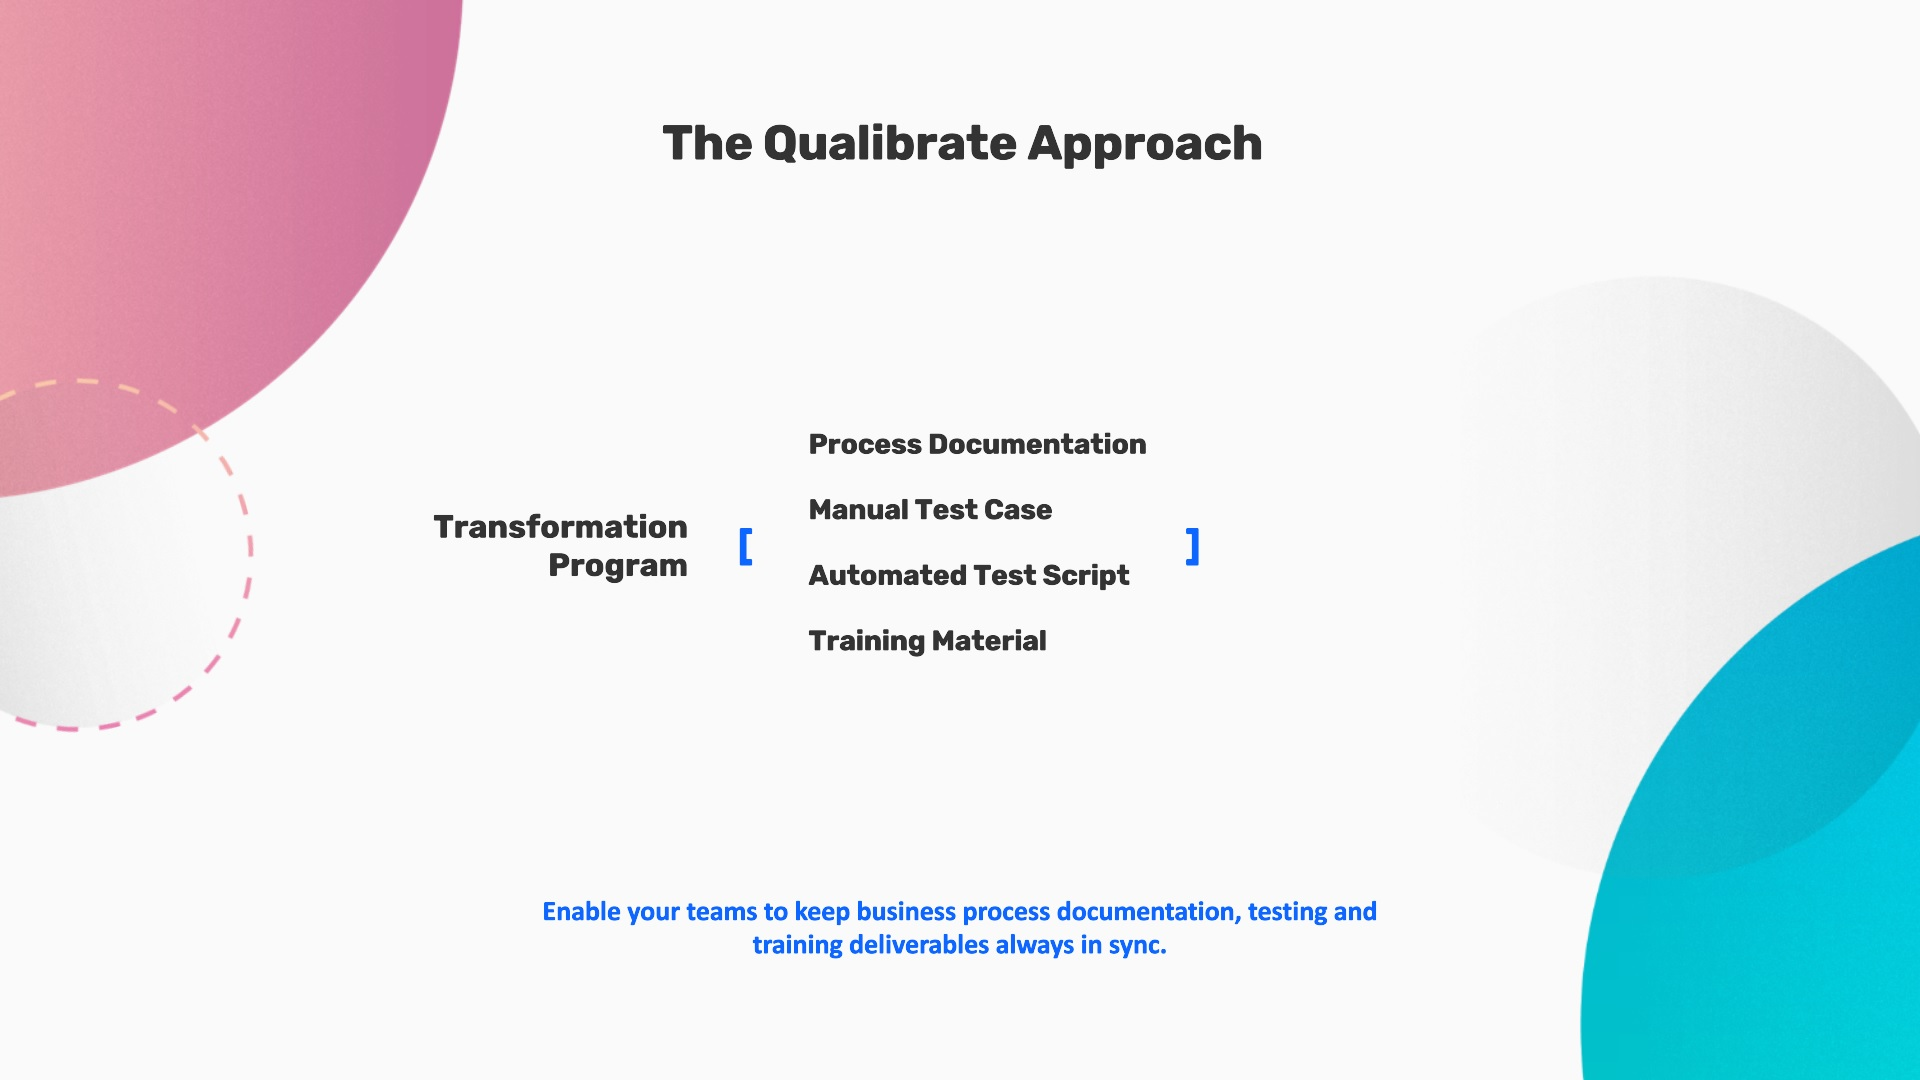 Software transformation program with Qualibrate